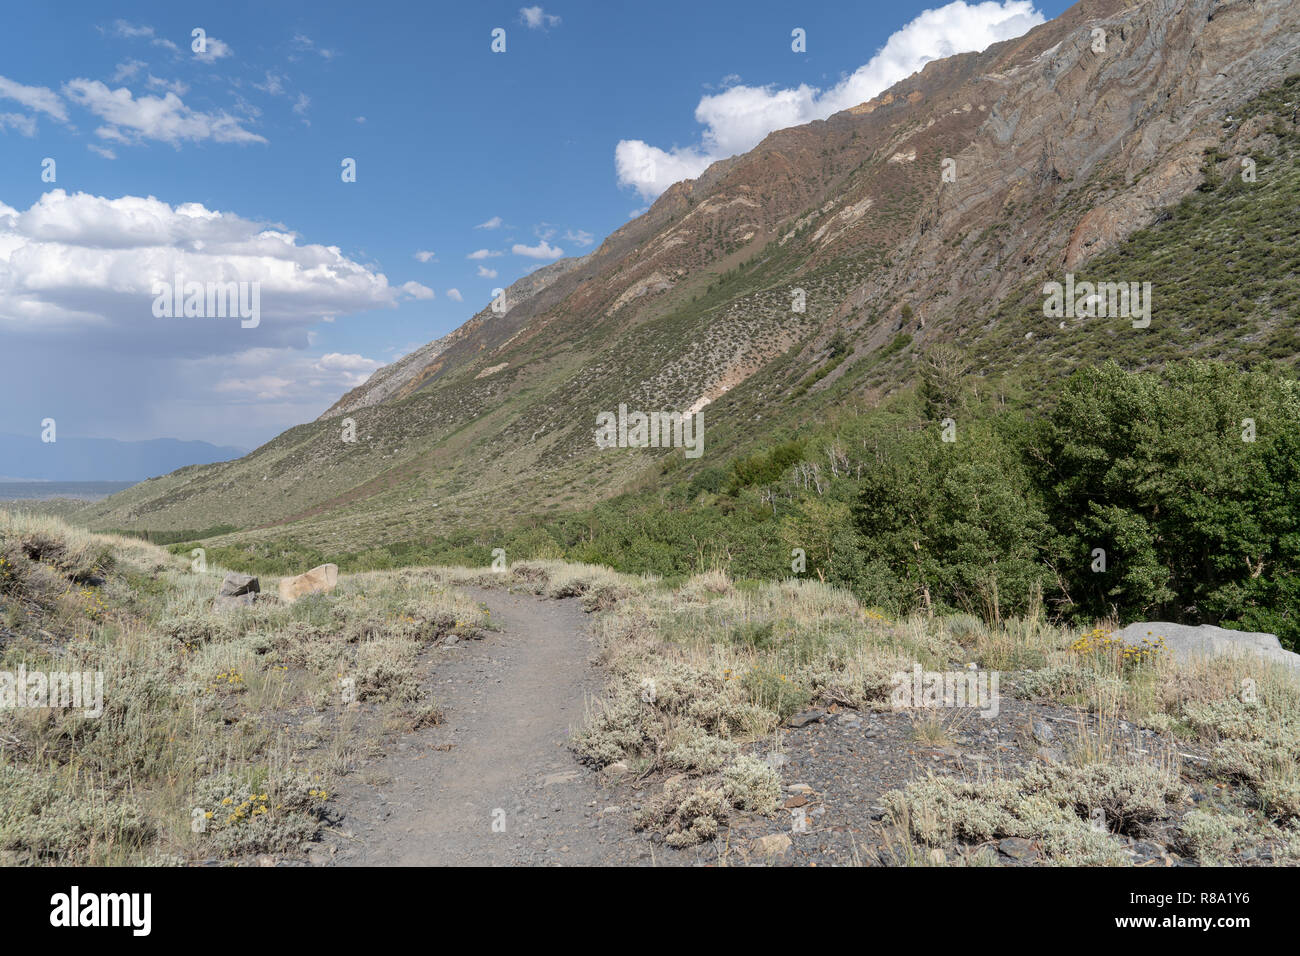 Hiking trail in McGee Creek Canyon in the Eastern Sierra Nevada mountains of California - Stock Image